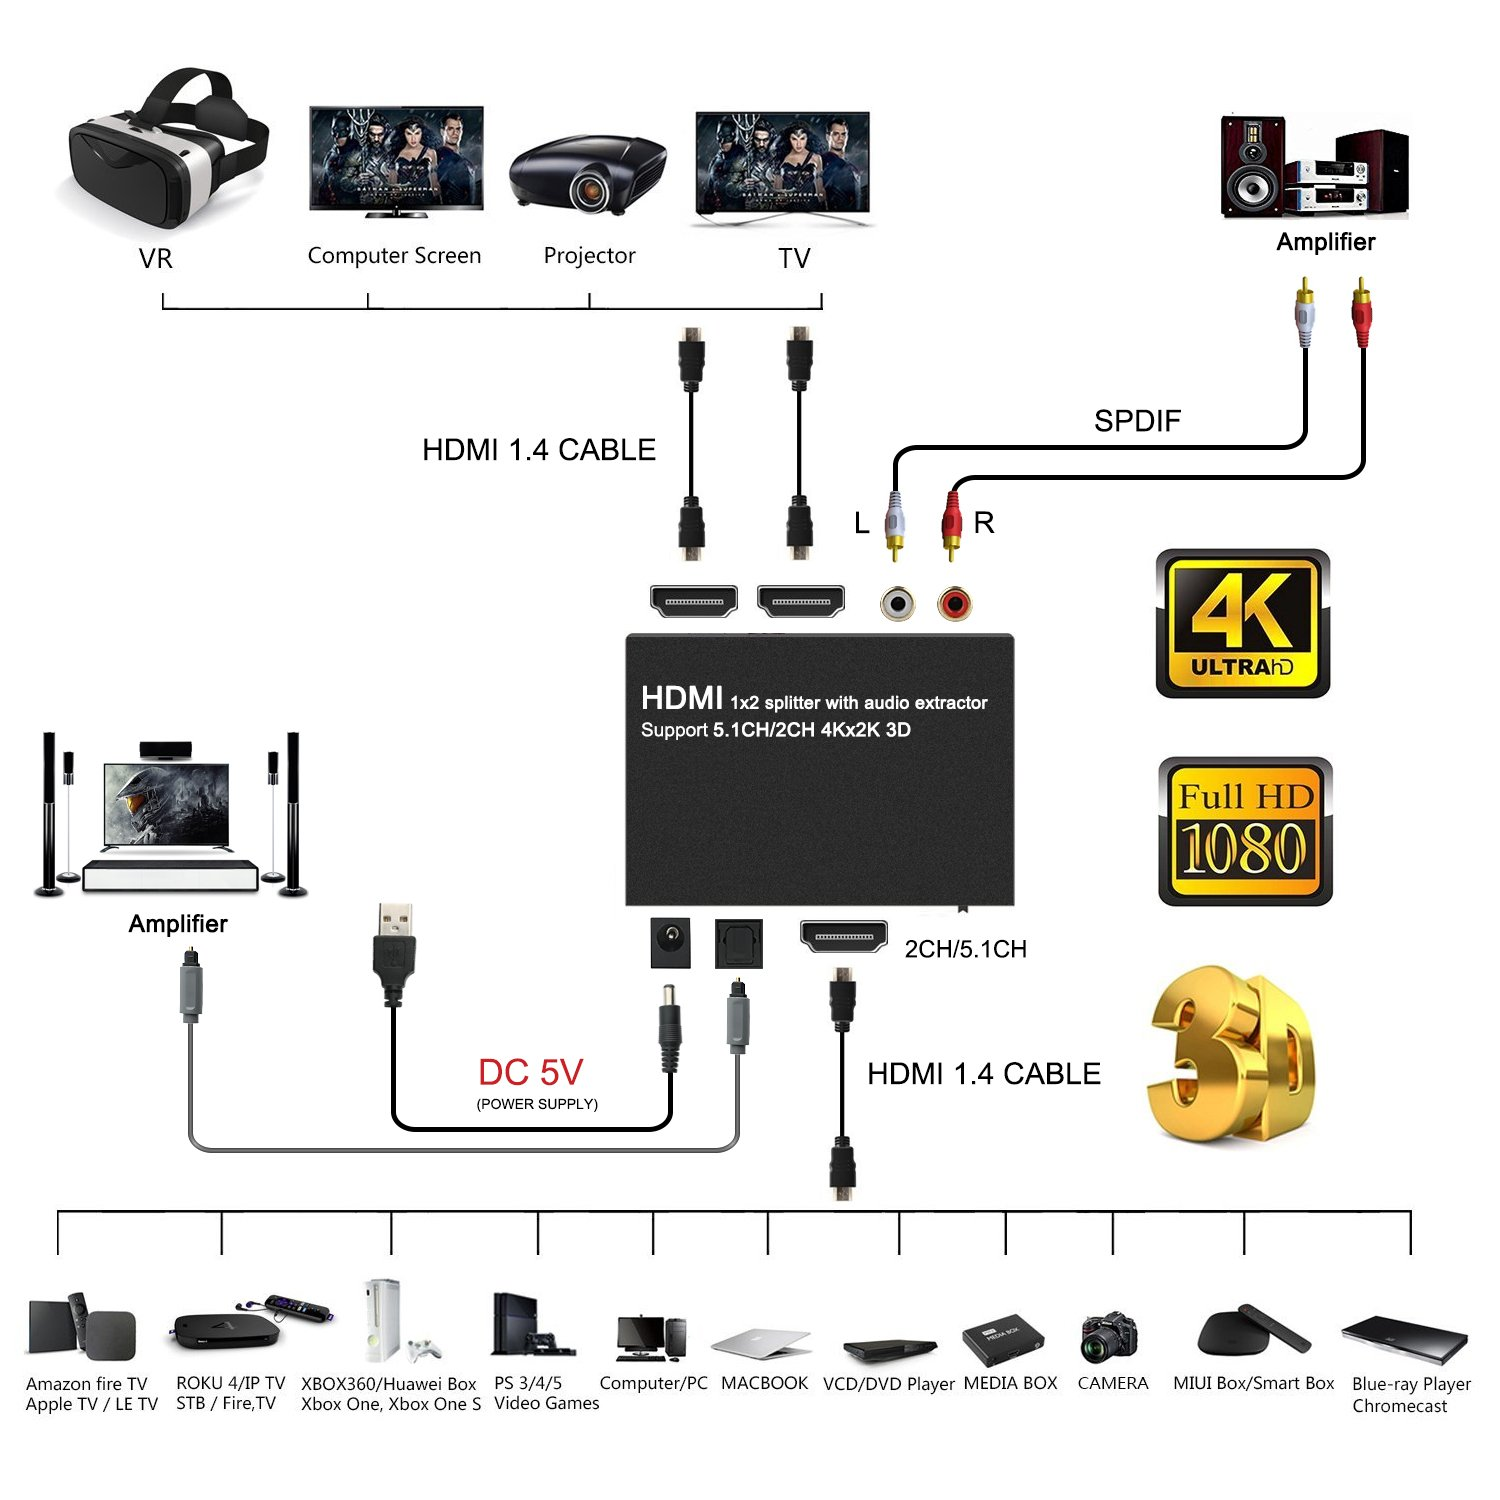 4K HDMI Splitter 1X2 with HDMI Audio Extractor +: Amazon.co.uk: